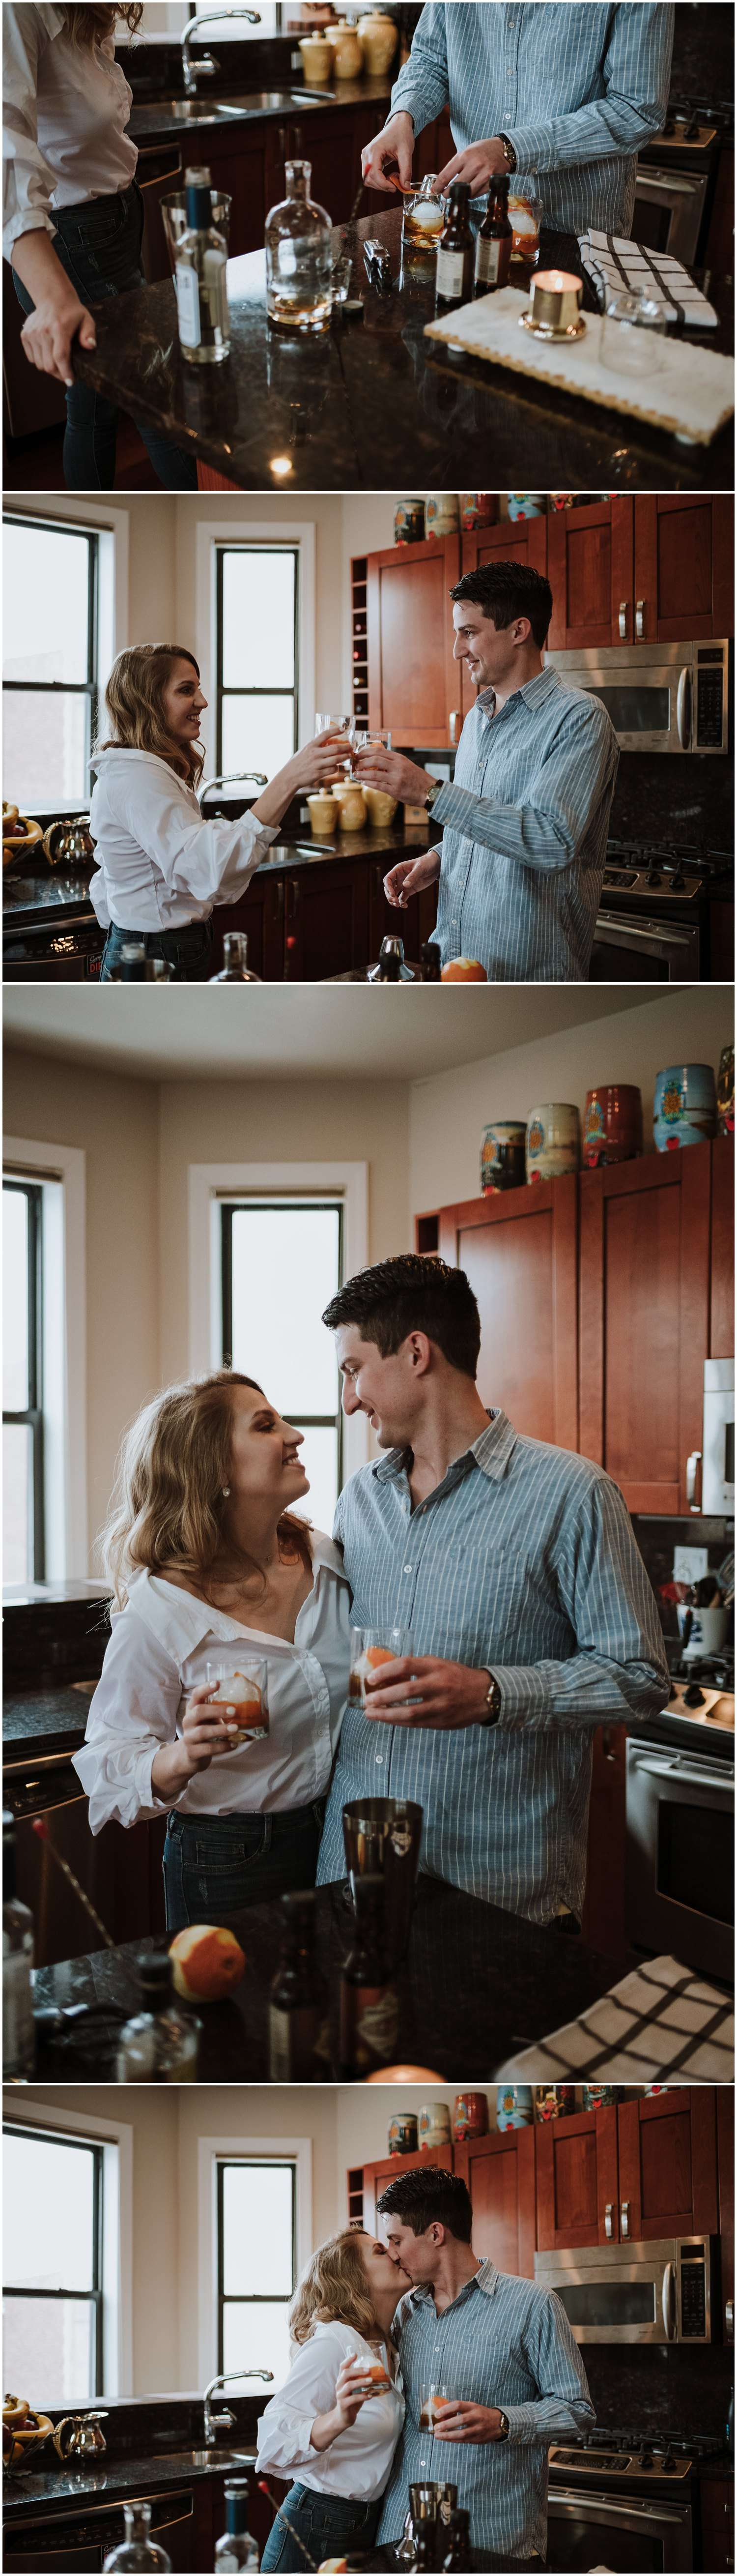 Chicago, photographer, photography, couples session, couple, engagement, session, Illinois, engagement session, lifestyle, in-home, indoor, at home, apartment, house, home, documentary, photojournalistic, photojournalism, natural, candid, Wisconsin, Utah, Michigan, Colorado, Chicagoland, portrait, unposed, intimate, intimate wedding, small wedding, elopement, elope, elopement photographer, chicago elopement, Illinois elopement, anniversary, in-home couples lifestyle session